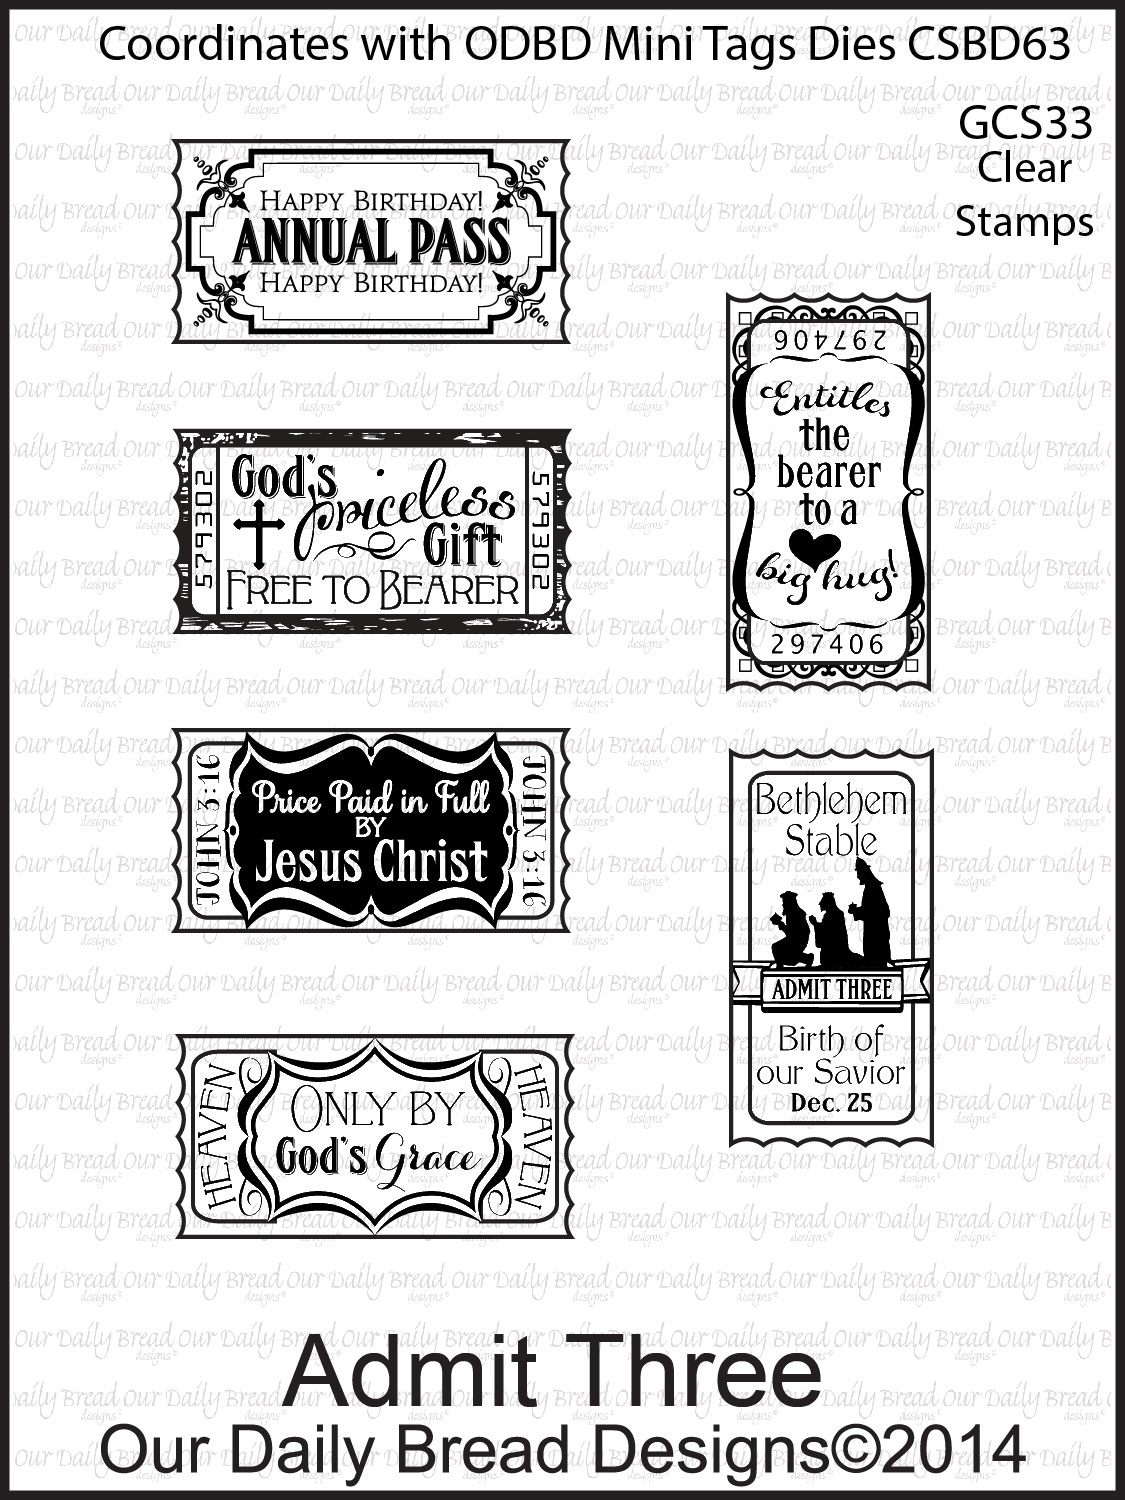 Stamps - Our Daily Bread Designs Admit Three